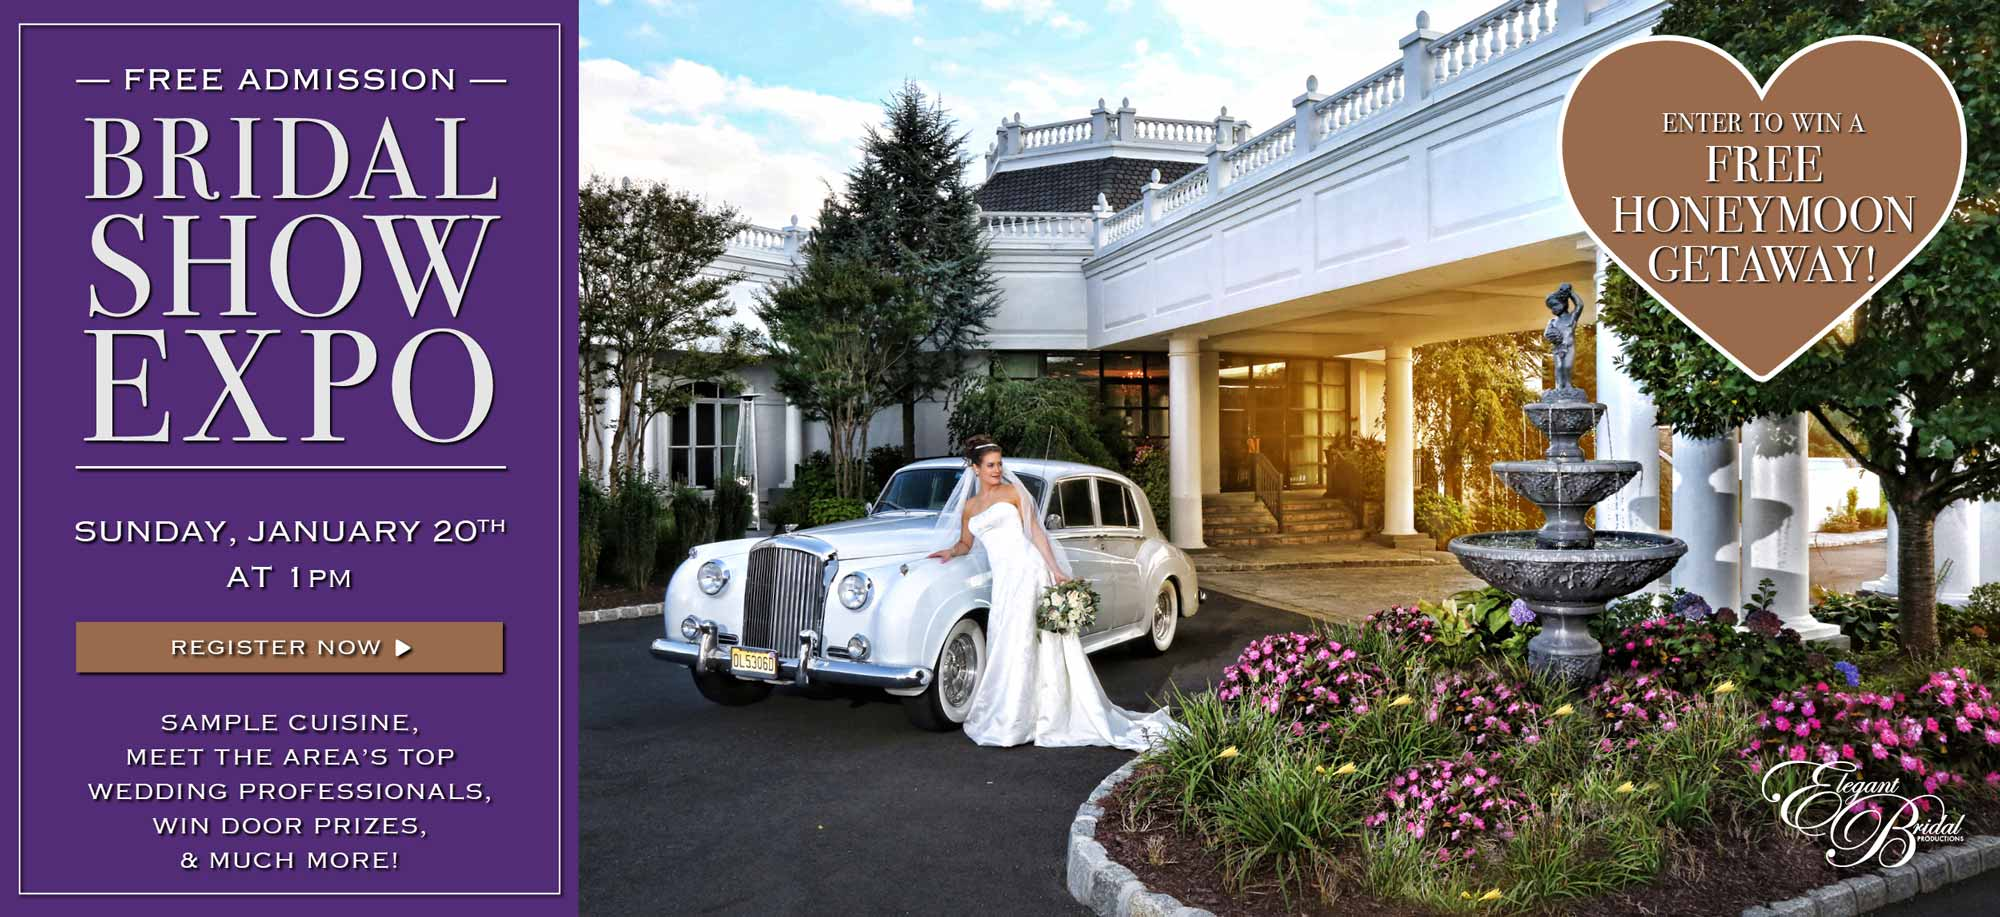 Mansion Bridal Expo Web Banner January 2019